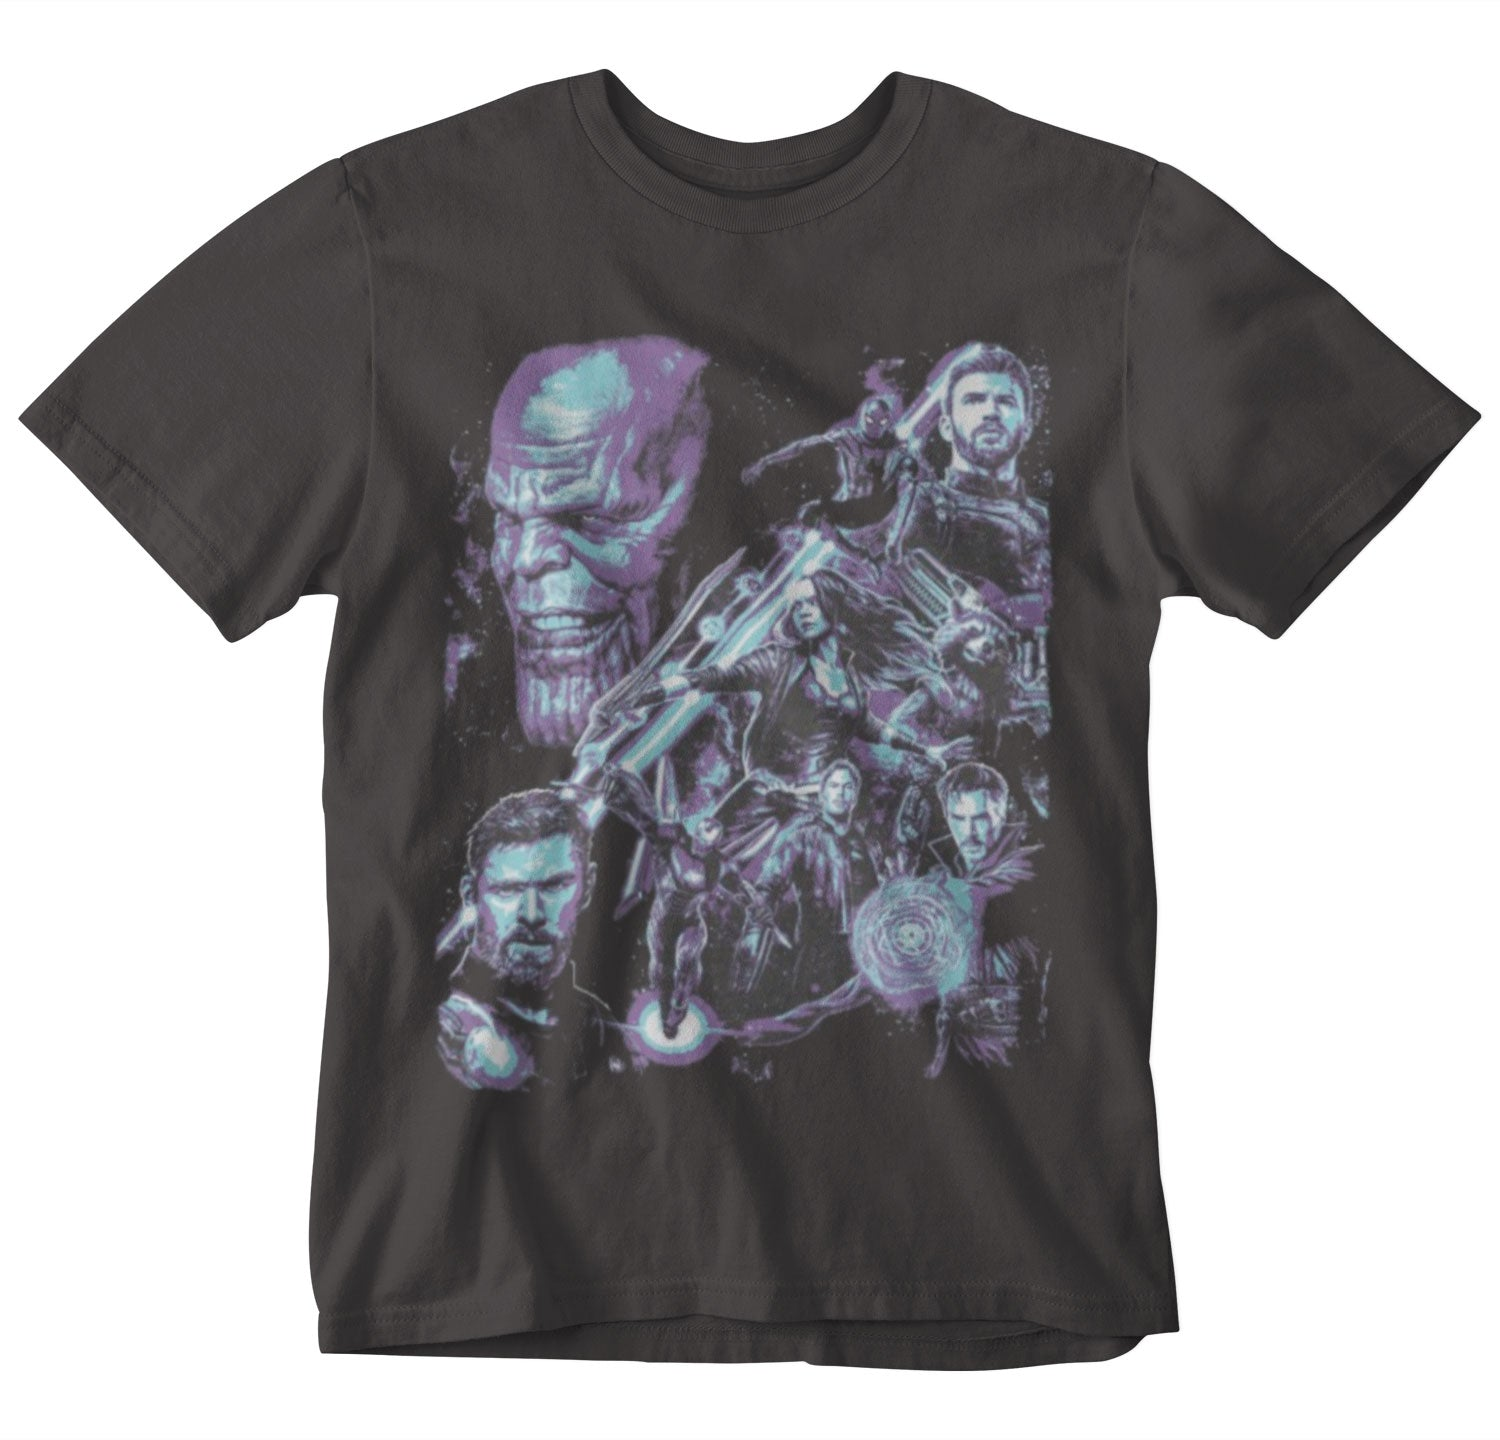 Avengers Infinity WAR - Heroes Thanos Men's Charcoal Tee